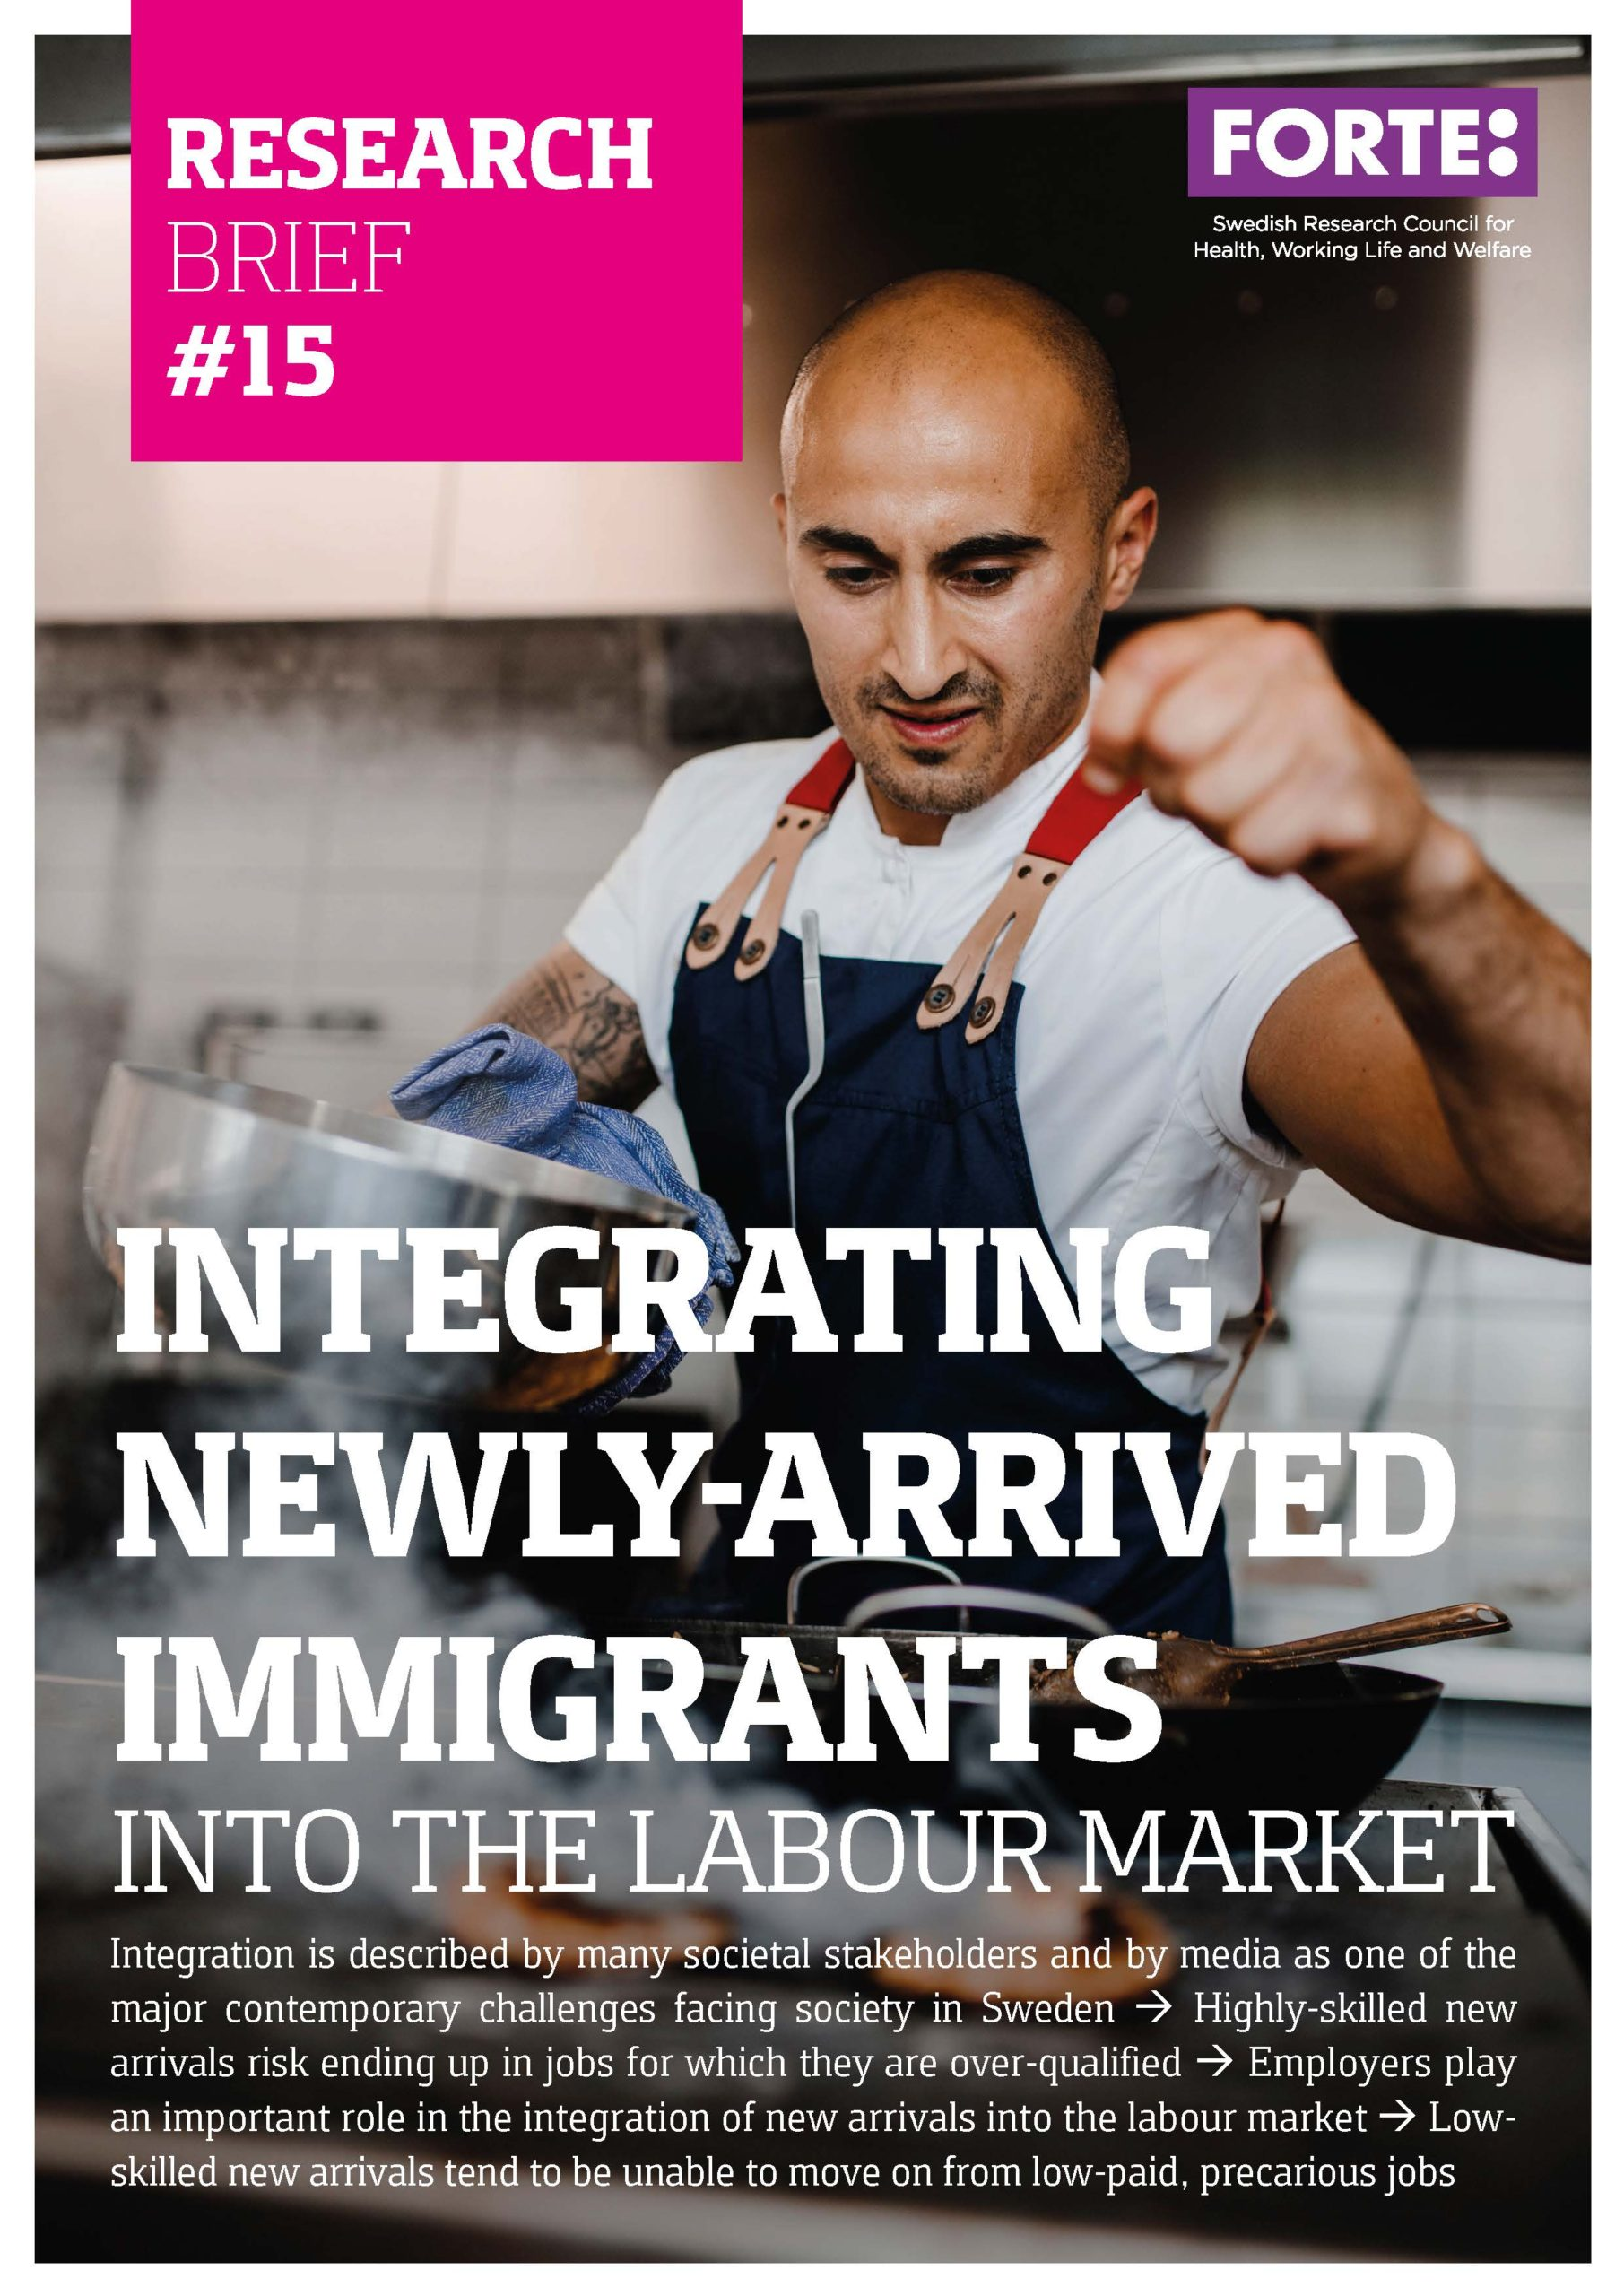 Research Brief: Integrating newly-arrived immigrants into the labour market